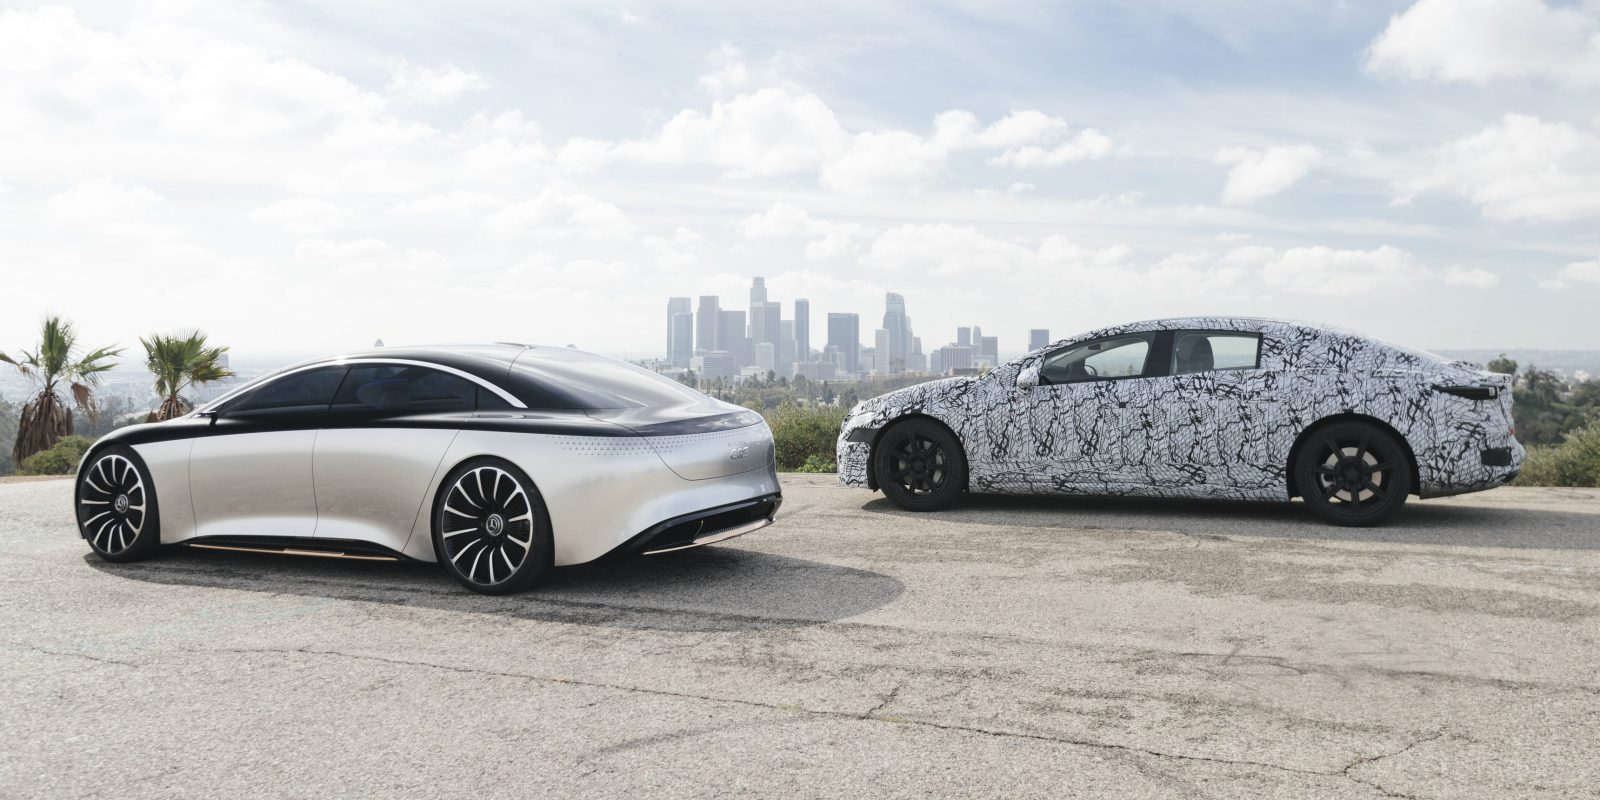 Mercedes-Benz gives preview of its EQS electric sedan with pre-production prototype [Gallery]